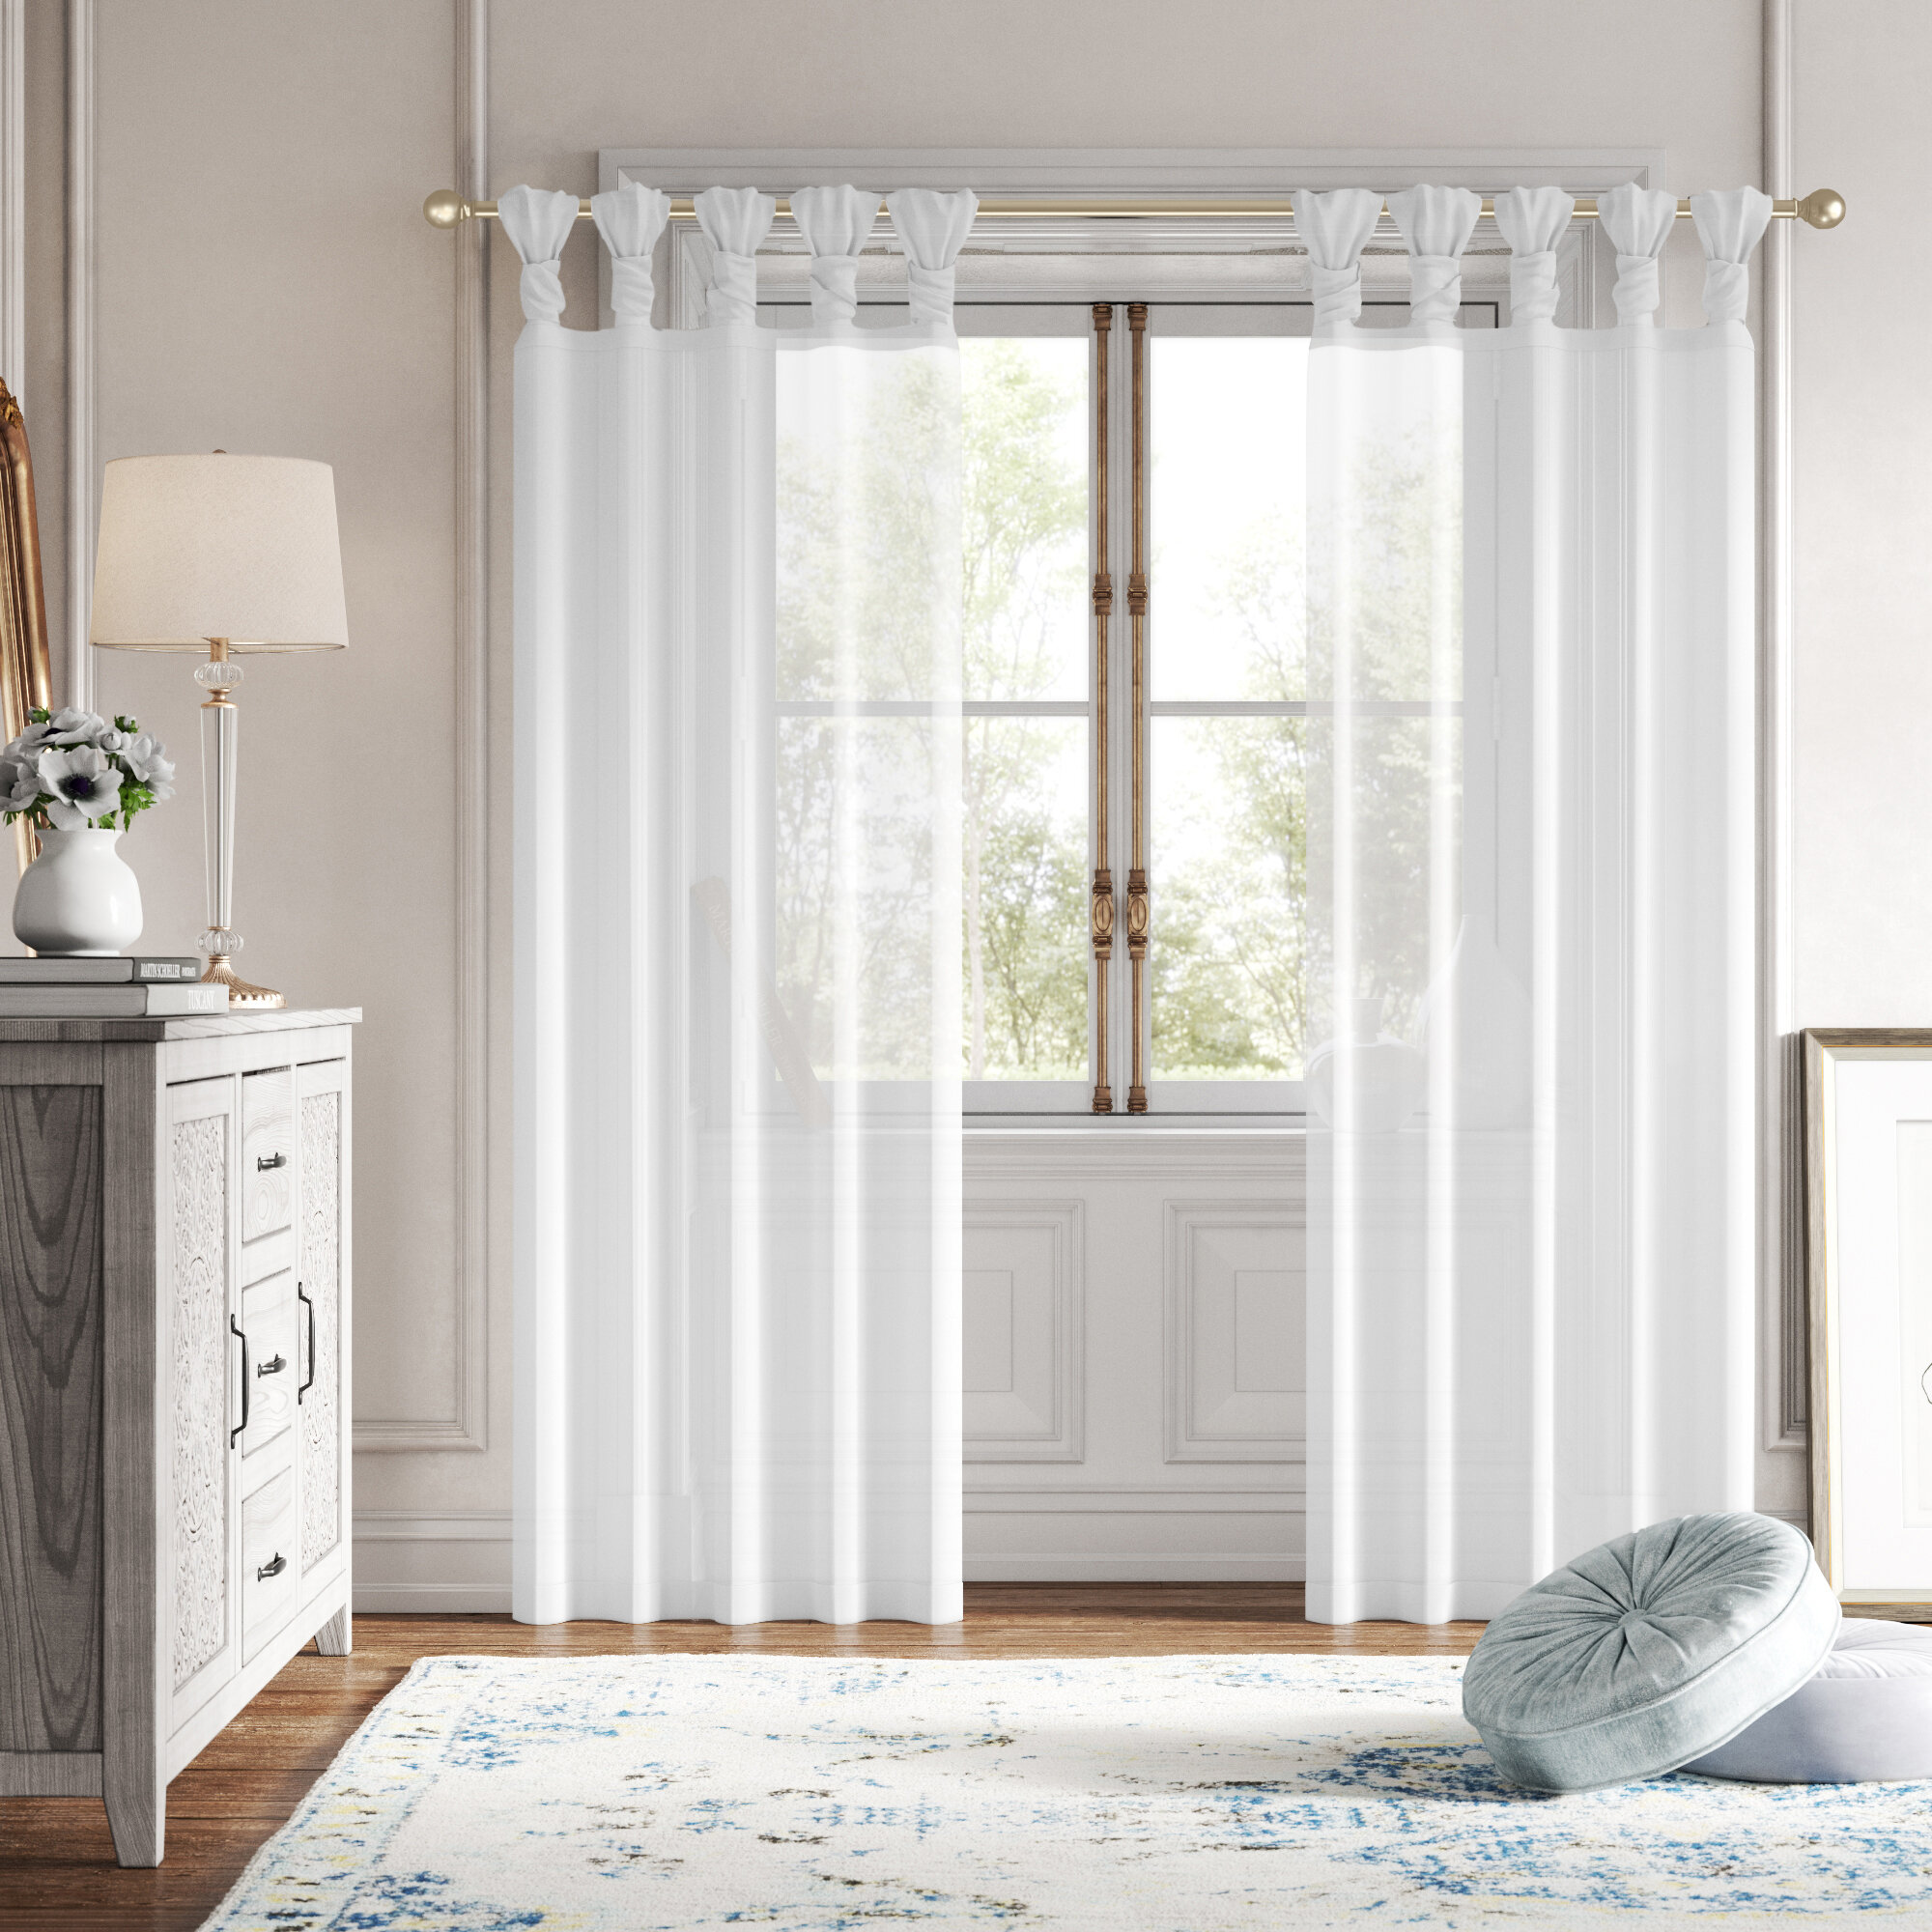 Tab Top Tropical Nautical Curtains Drapes You Ll Love In 2021 Wayfair